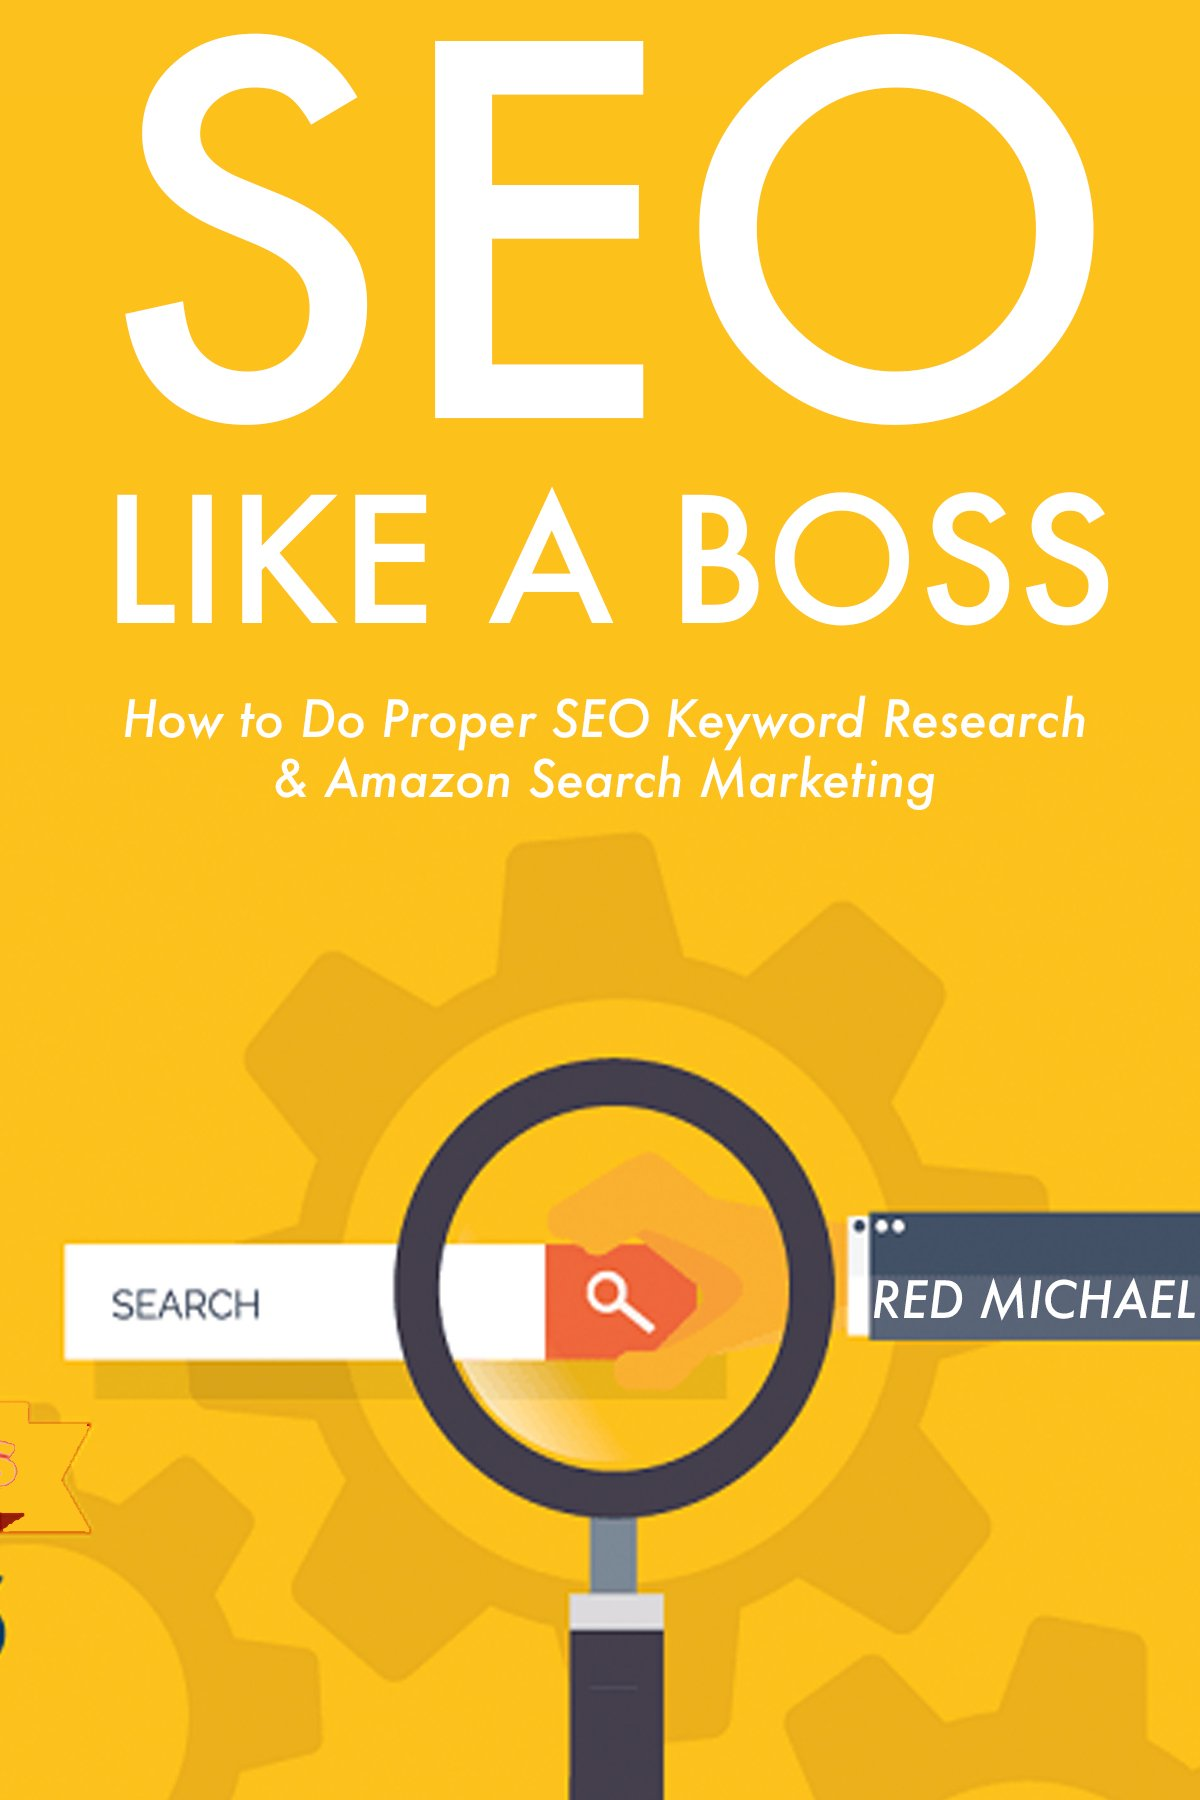 SEO LIKE A BOSS (2017): How to Do Proper SEO Keyword Research & Amazon Search Marketing